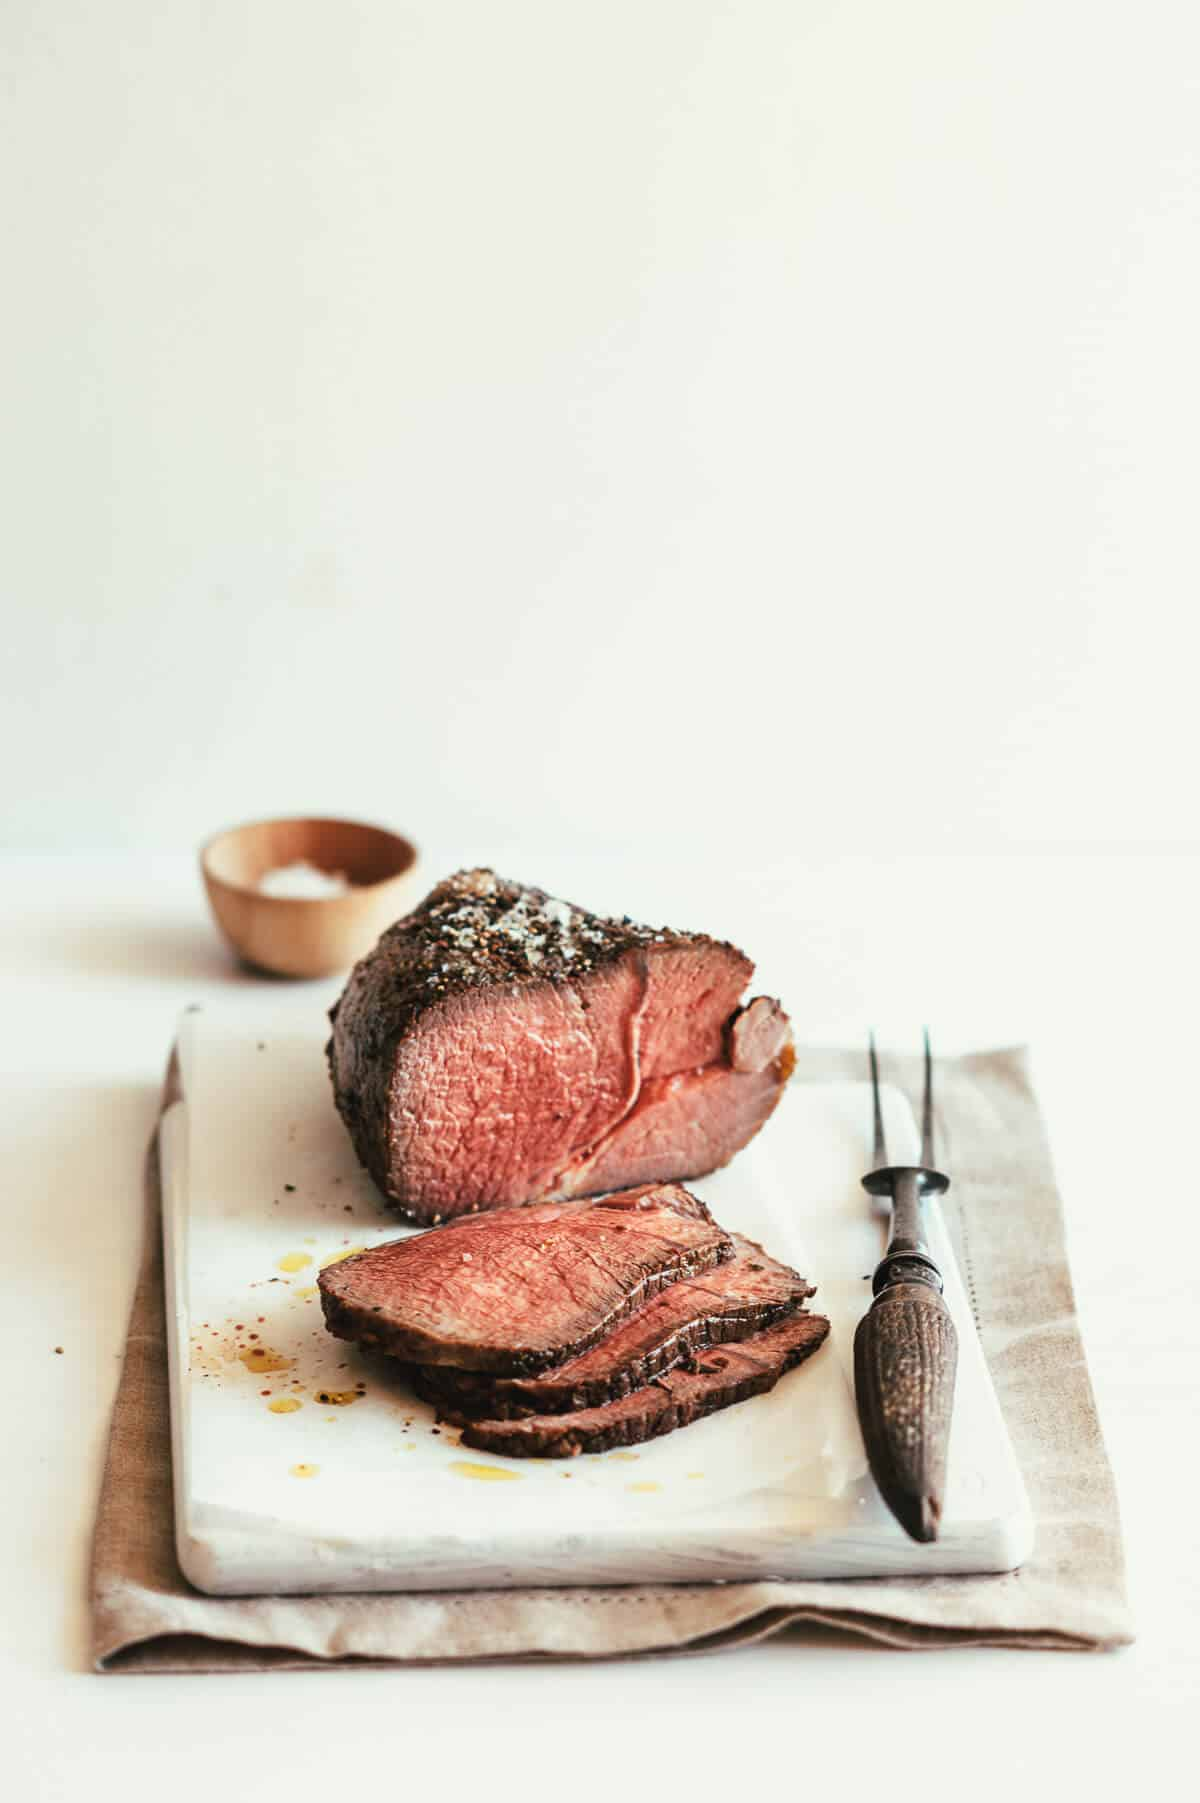 sliced roast beef served on a white board